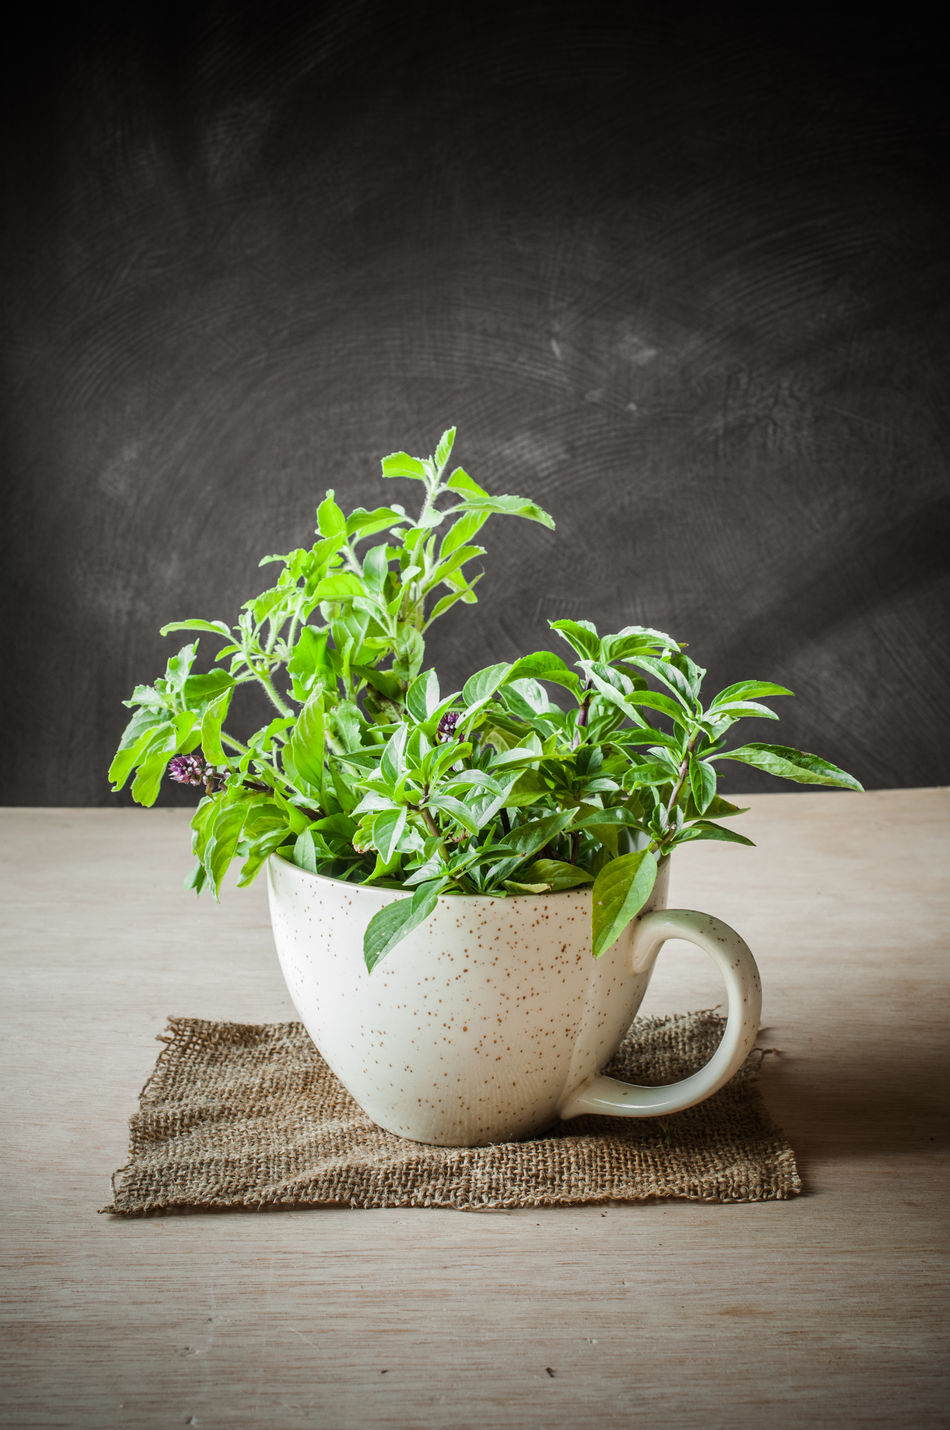 Background Basil Ceramic Close-up Concept Conceptual Cup Food Food Stylist Freshness Growth Healthy Eating Herb Idea Indoors  Leaf Leaf 🍂 Nature No People Plant Raw Food Studio Shot Table Vegetable Wood - Material